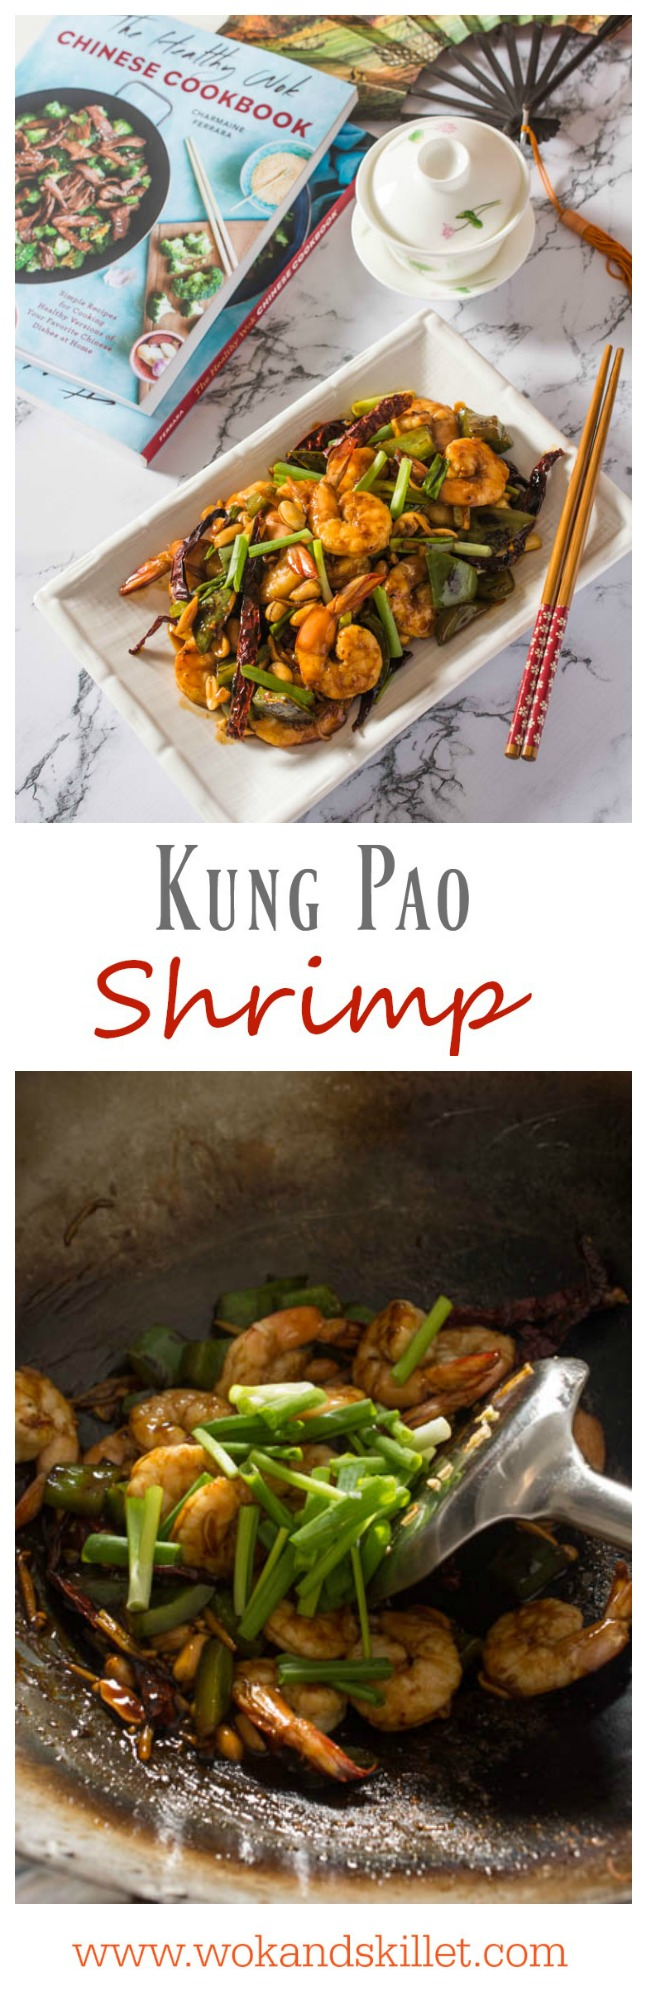 This spin on the American-Chinese classic features delectable shrimp, bell pepper and crunchy roasted peanuts covered in a savory and slightly (or very!) spicy sauce. So easy to prepare and ready in only 15 minutes!